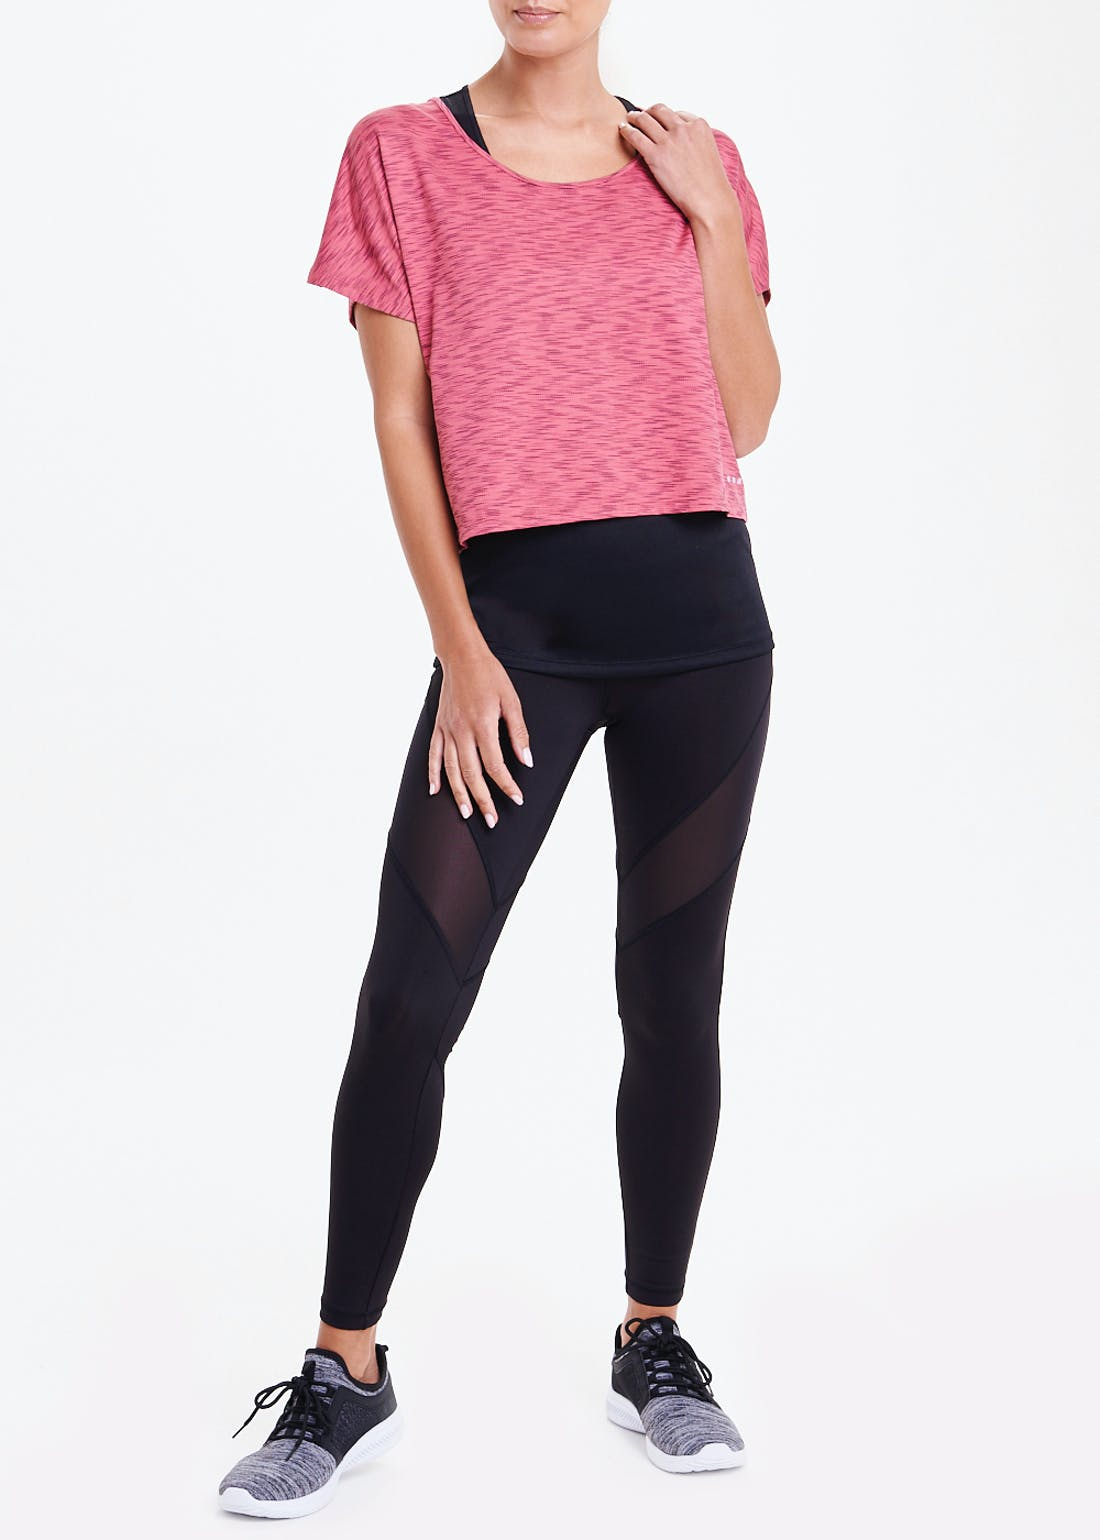 Souluxe Pink 2 in 1 Gym Top